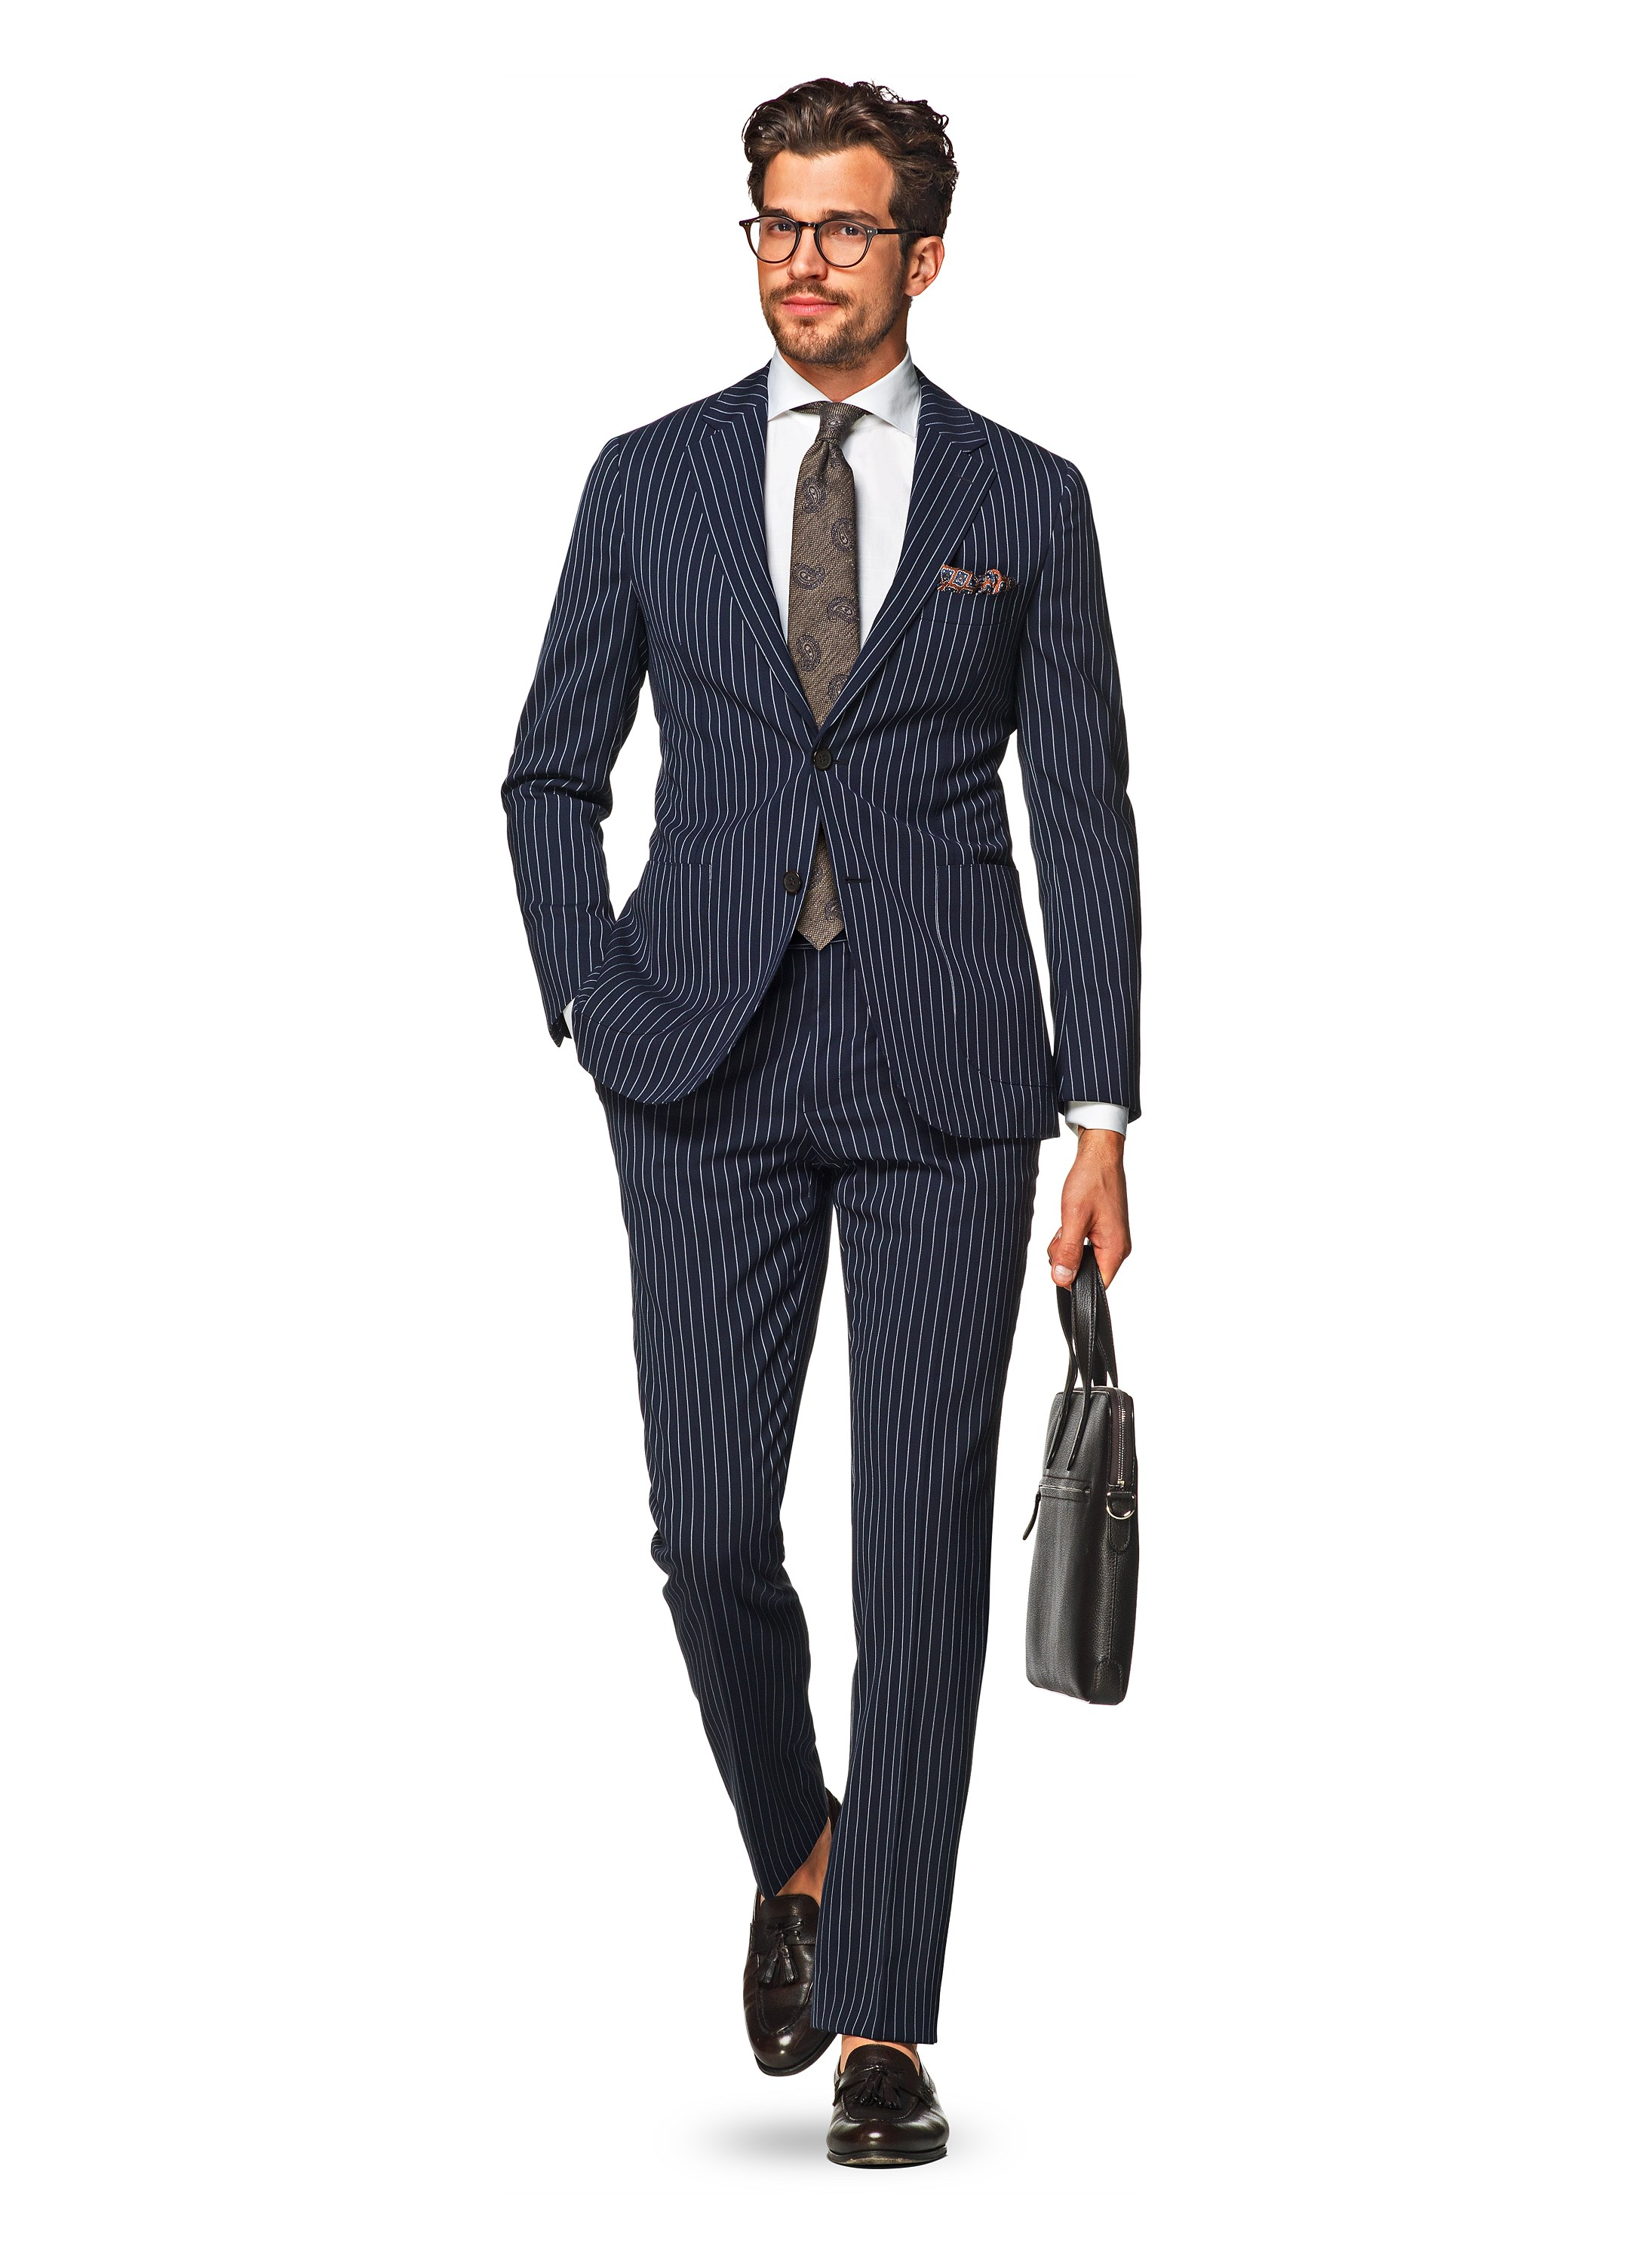 Suits_Blue_Stripe_Havana_P5112_Suitsupply_Online_Store_1.jpg